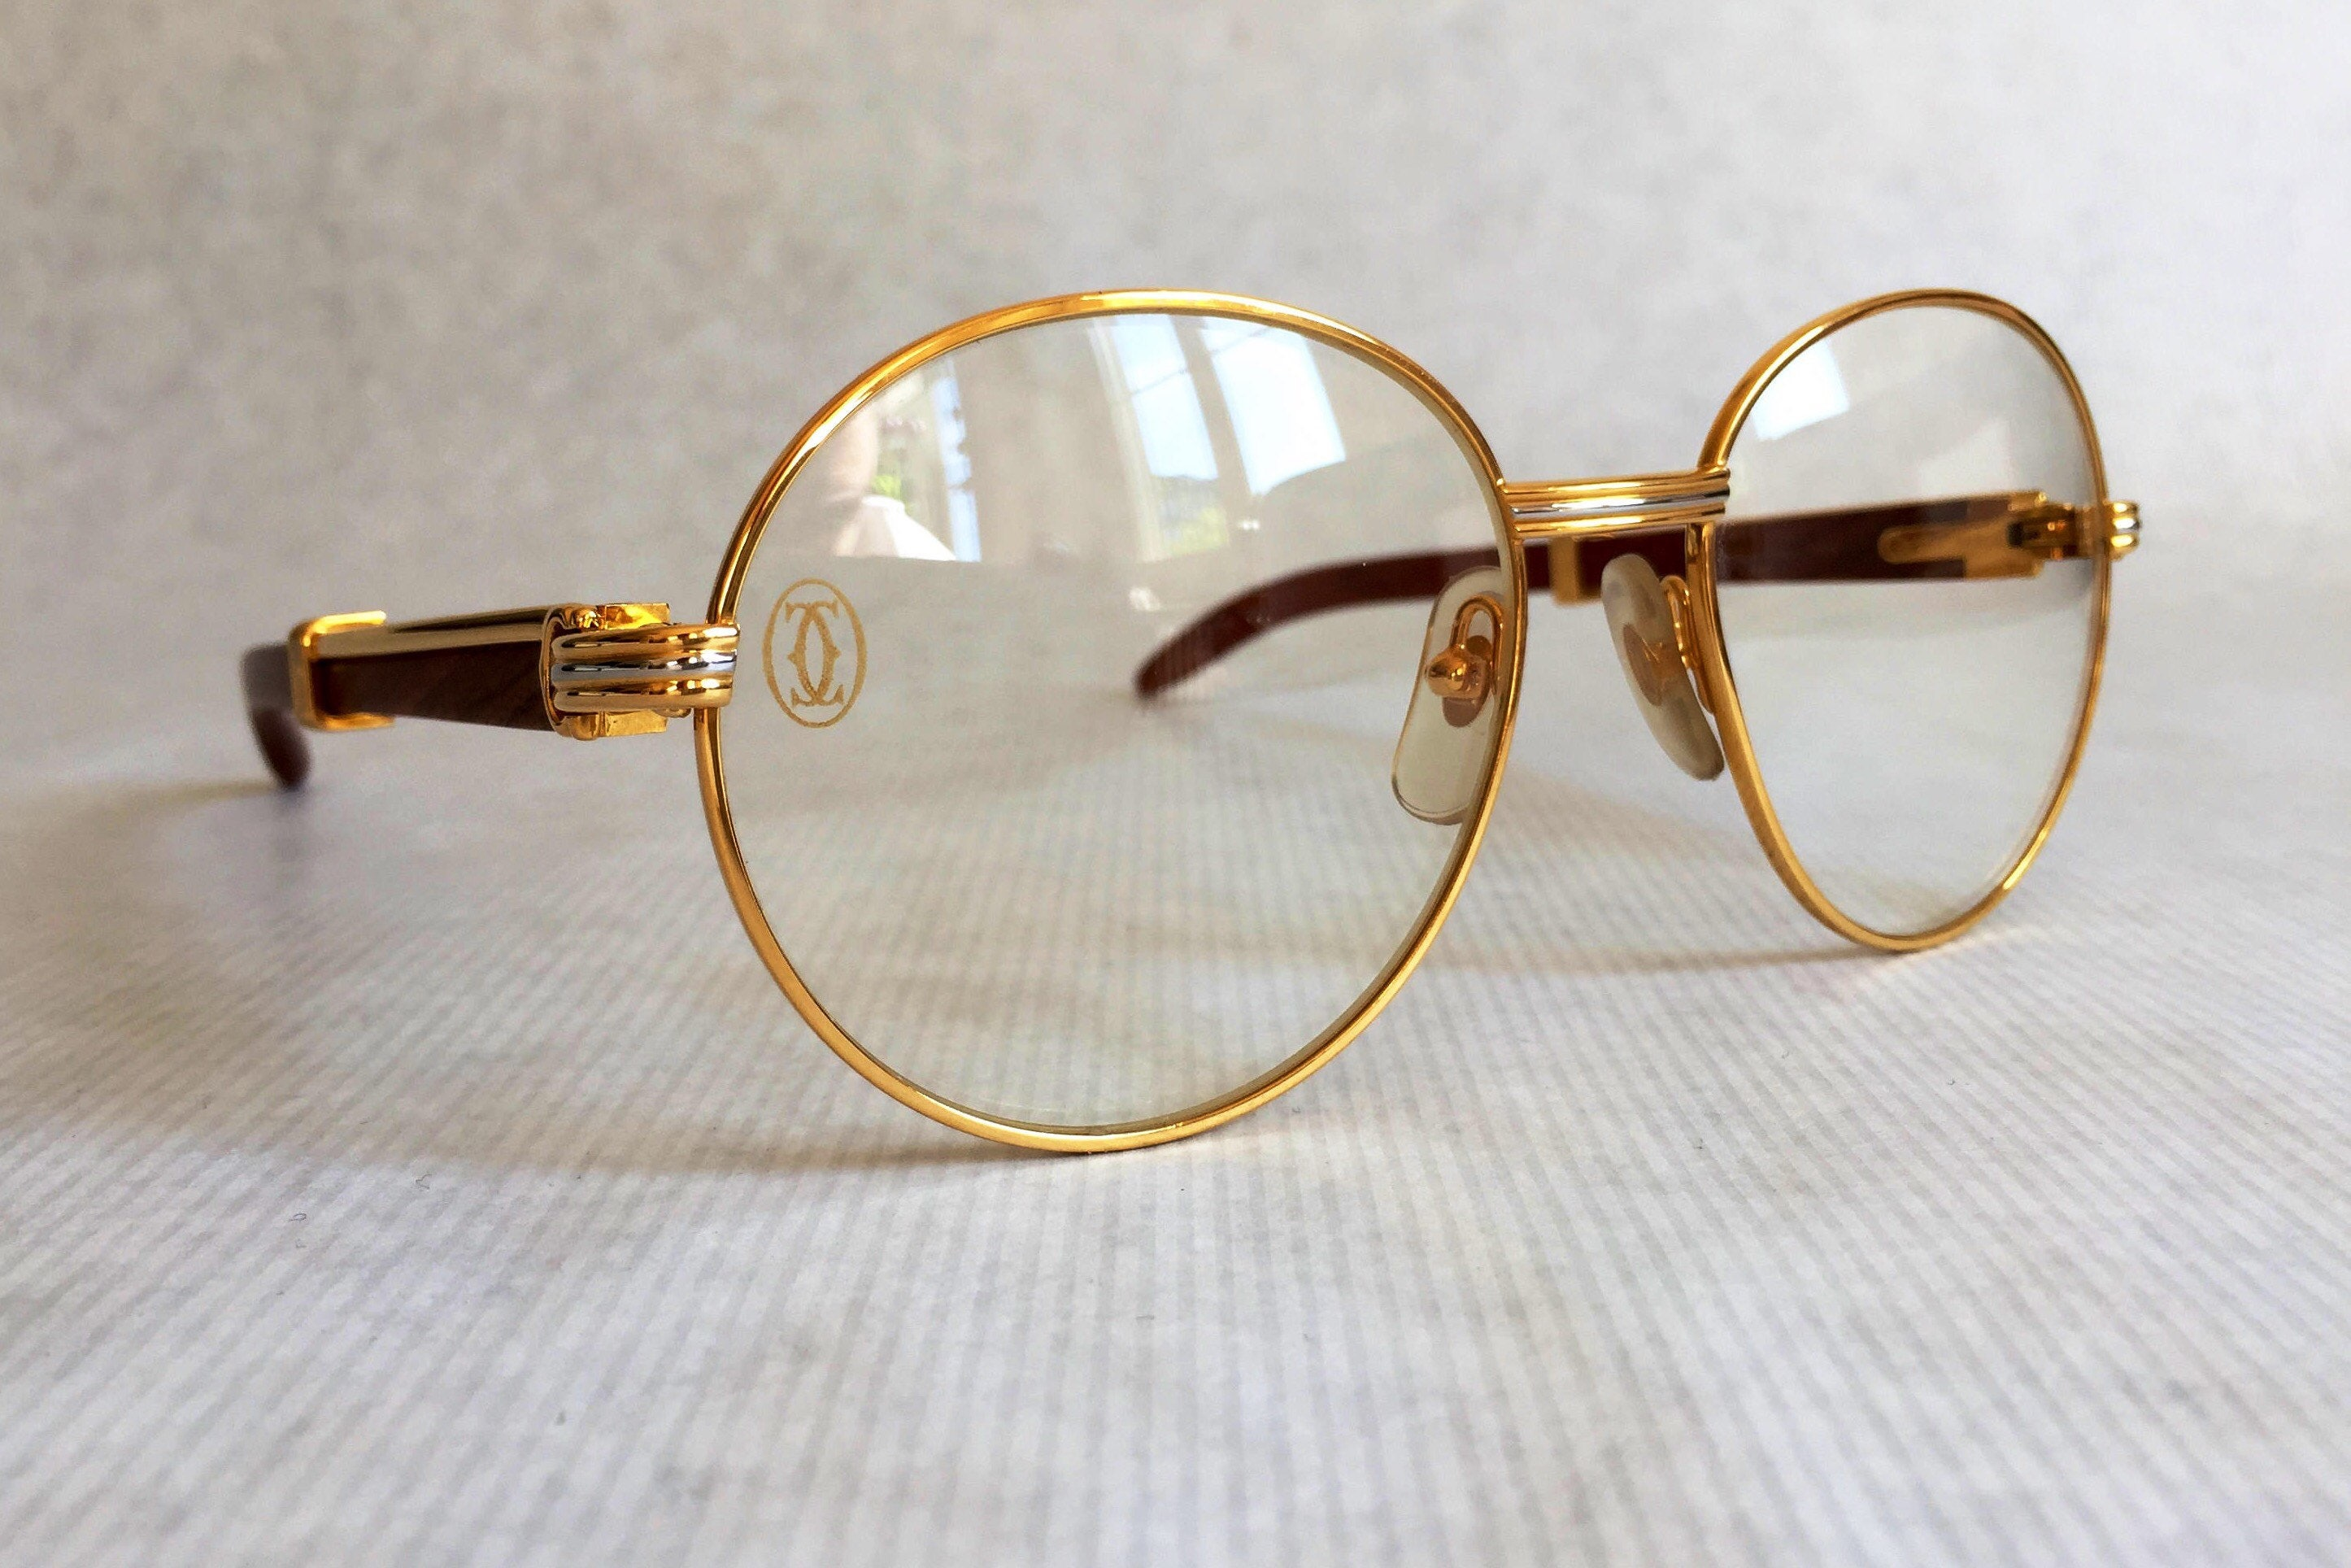 c7286d8aa8 Cartier Bagatelle Vintage Glasses Large 18kt Gold Plated New Old Stock Full  Set. gallery photo ...